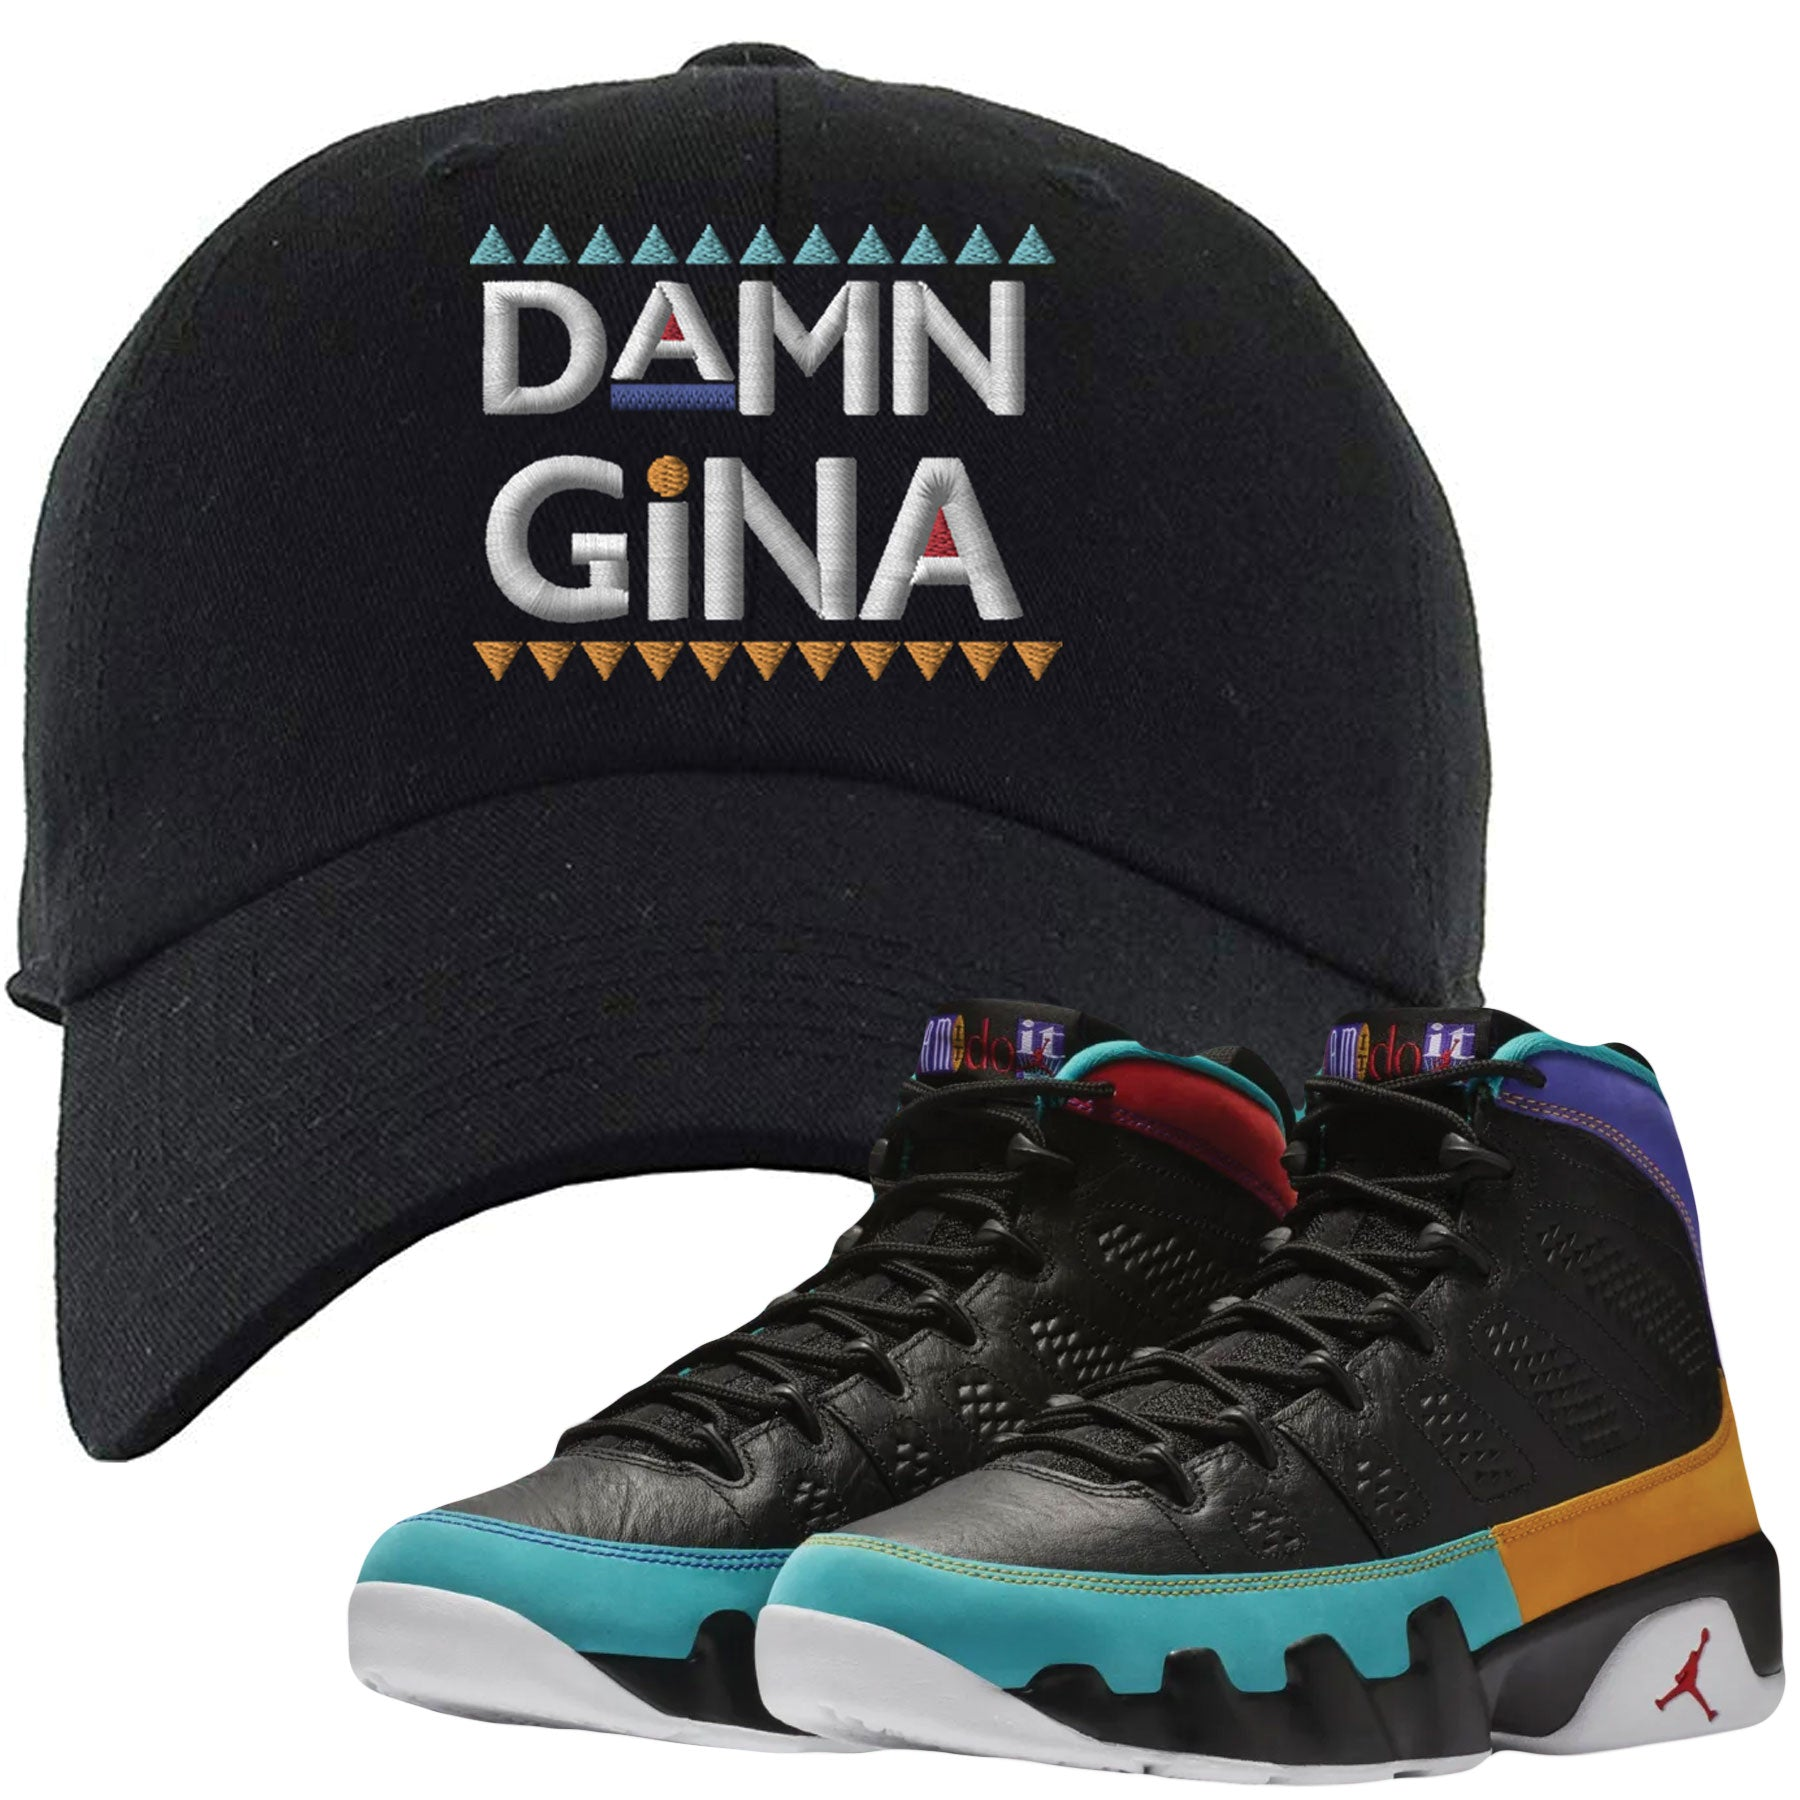 new product e3a2a 16885 Shop sneaker matching clothing to match your pair of Jordan 9 Dream It Do  It Sneakers